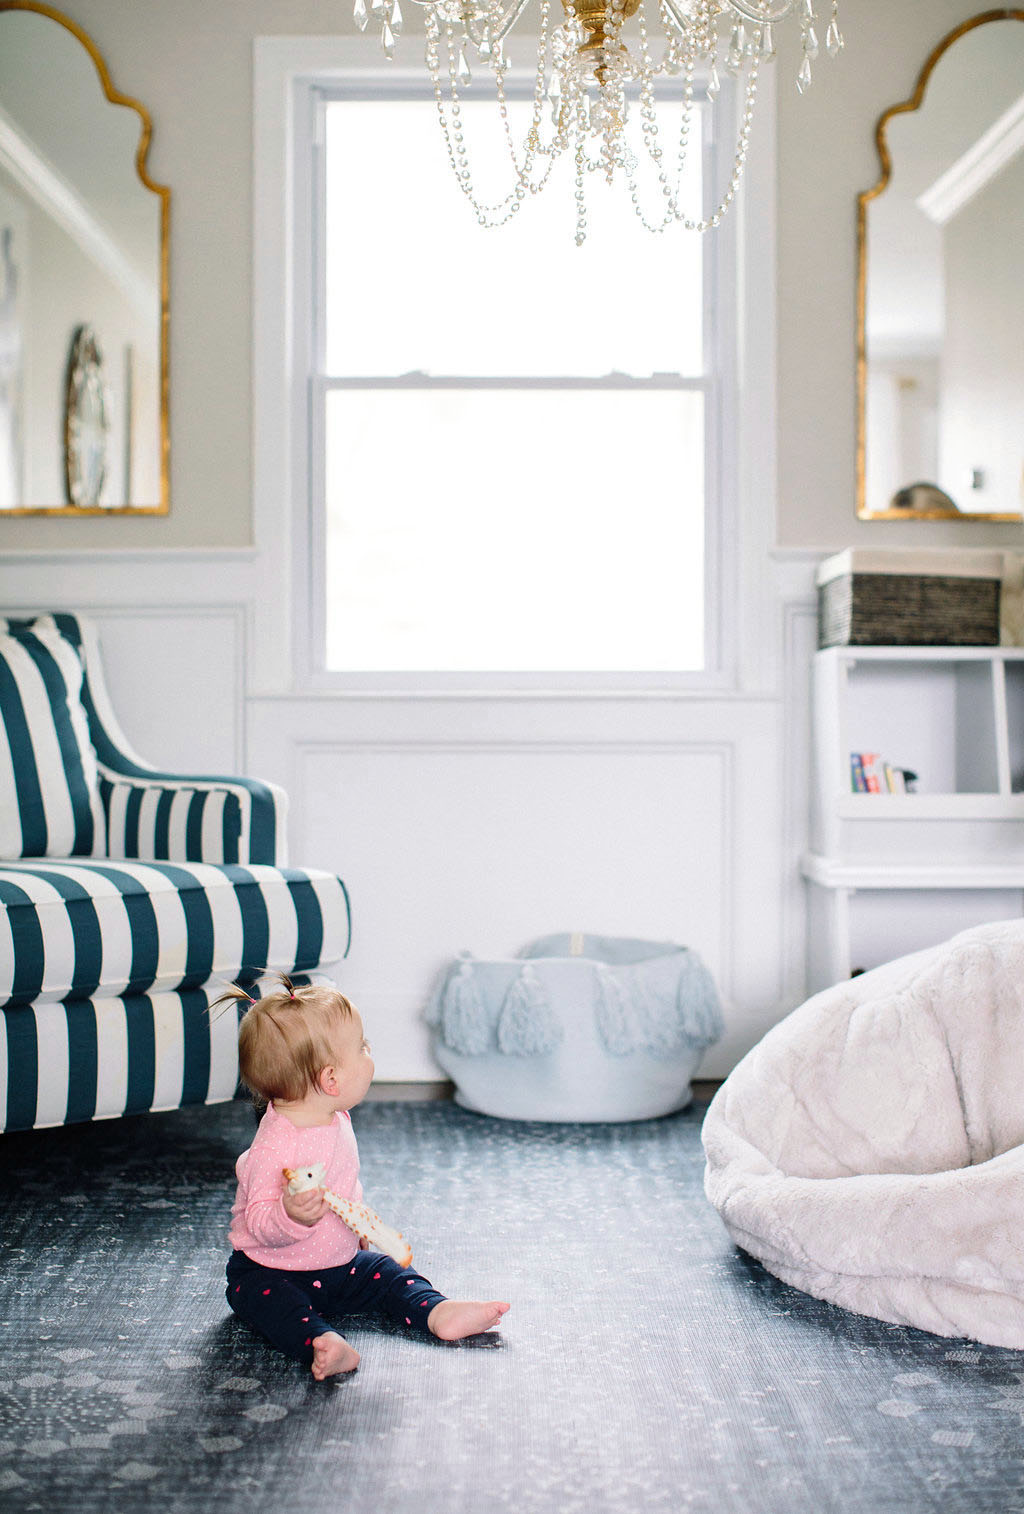 Amalia S Playroom With Little Nomad